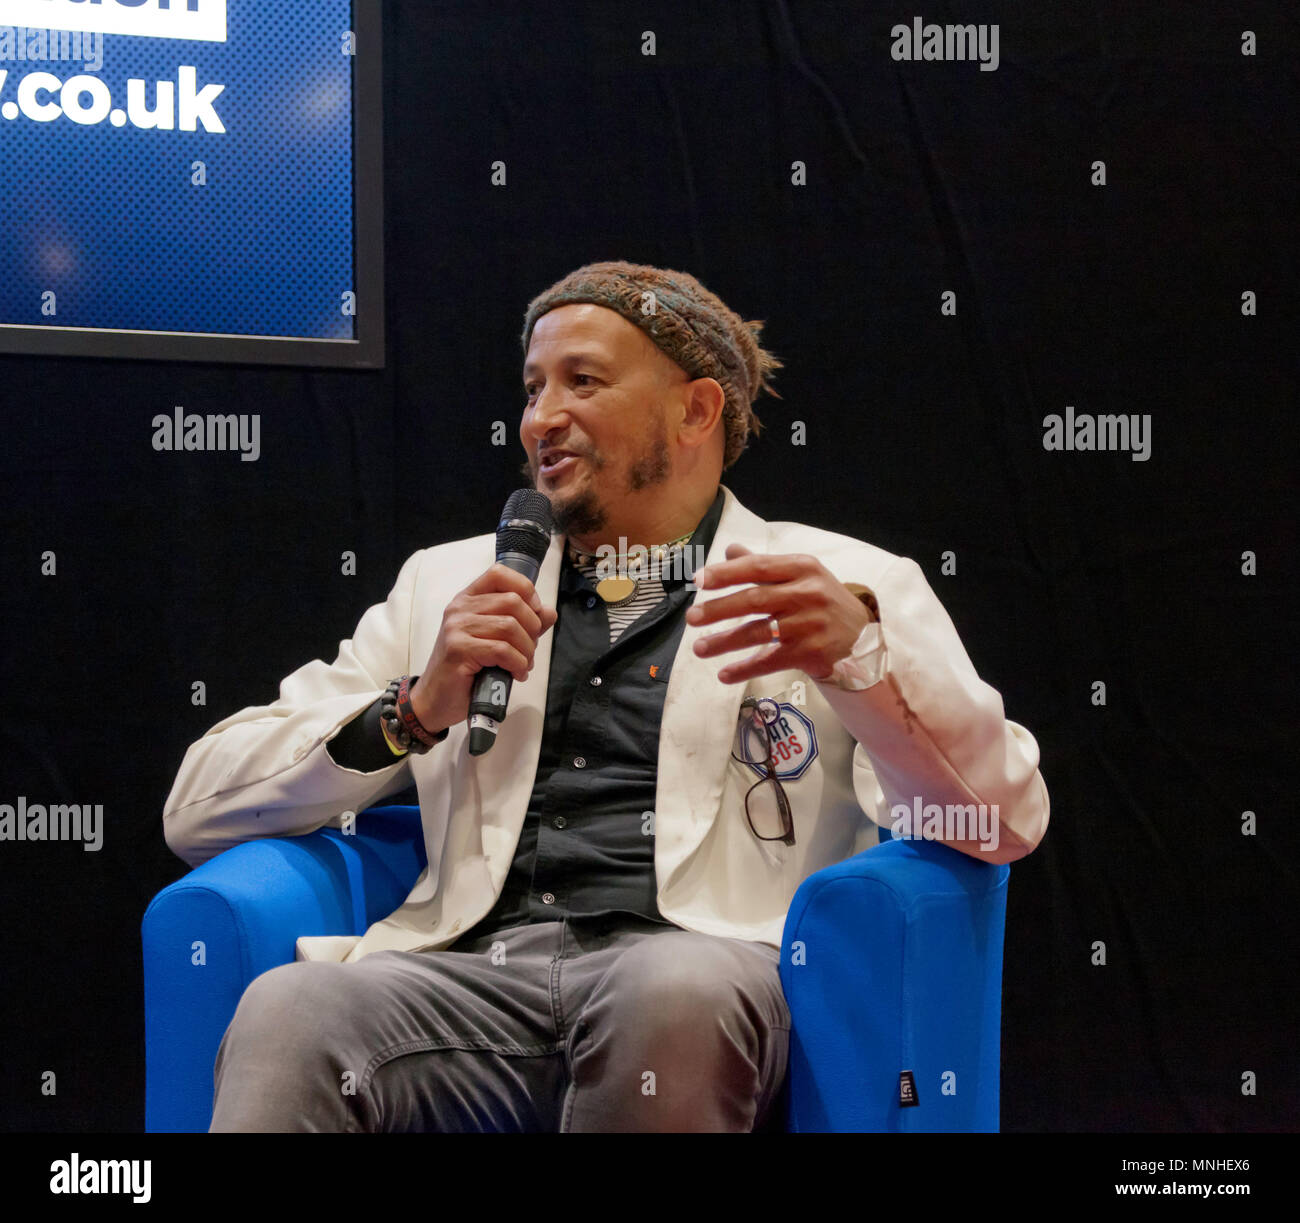 Fuzz Townshend, from the TV show, Car S.O.S., being interviewed at the Lecture Theatre, during the press day of  the London Motor Show 2018. - Stock Image